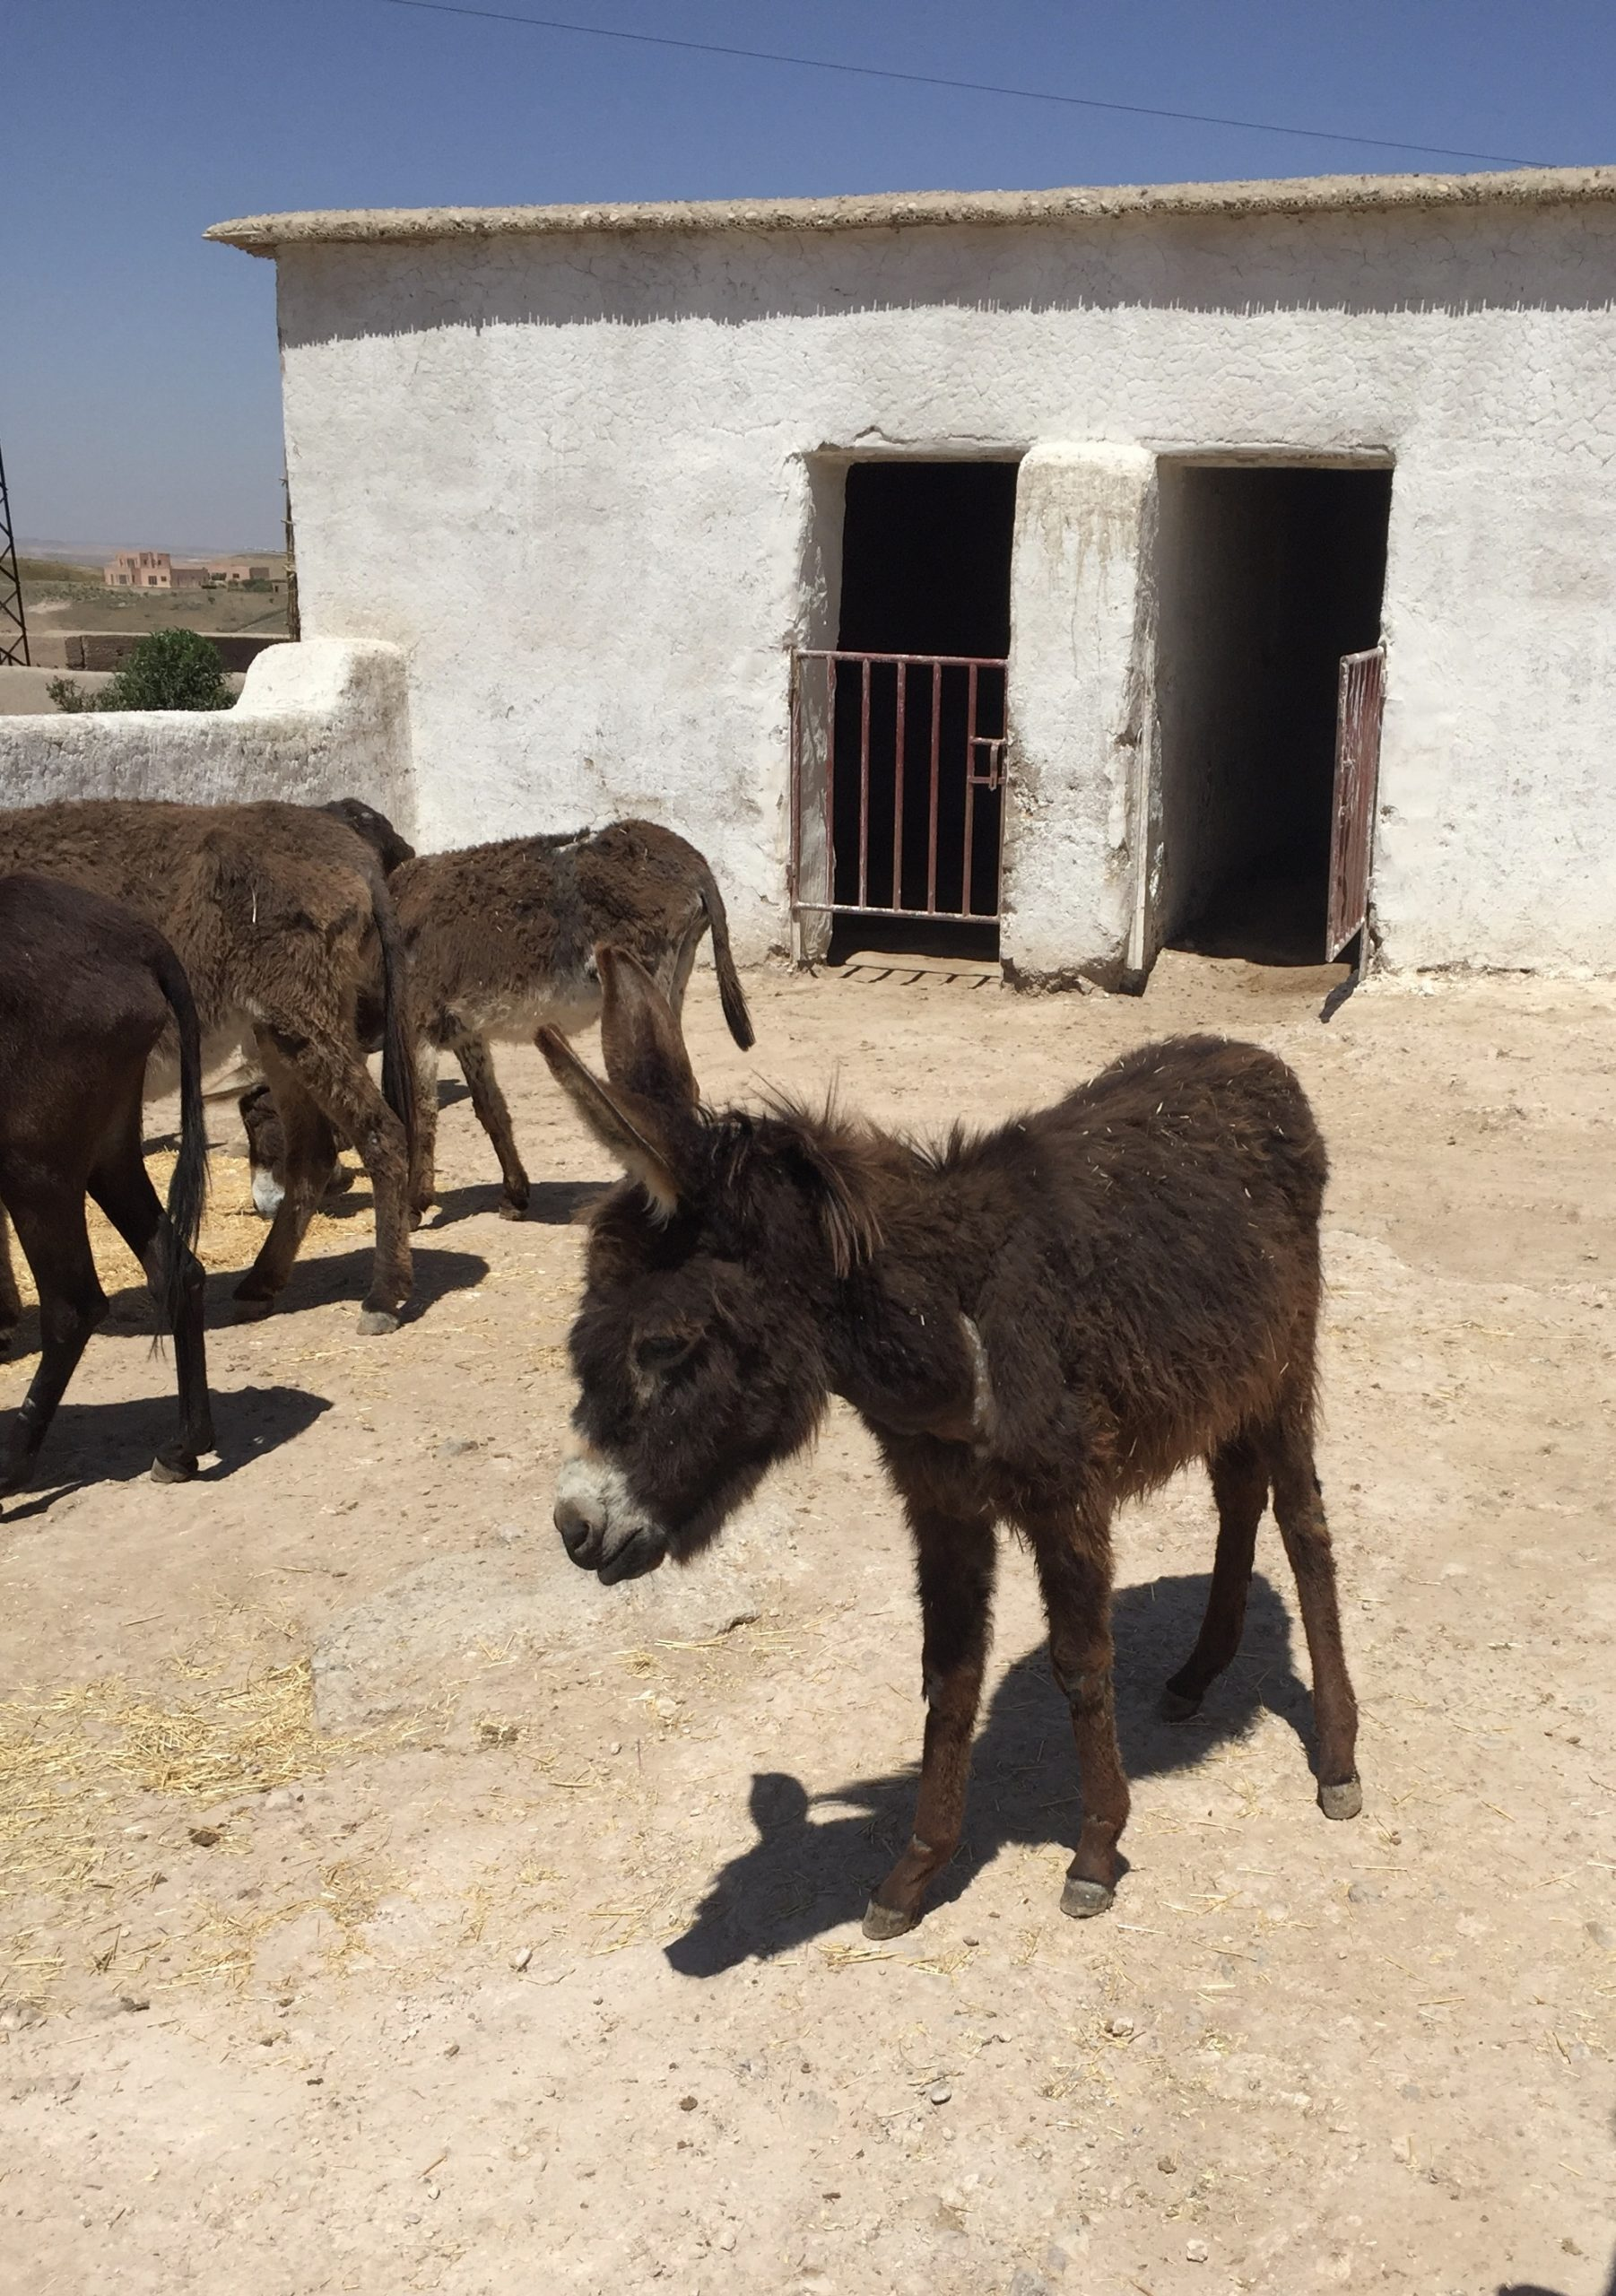 gallery image for Animal Friendly Morocco